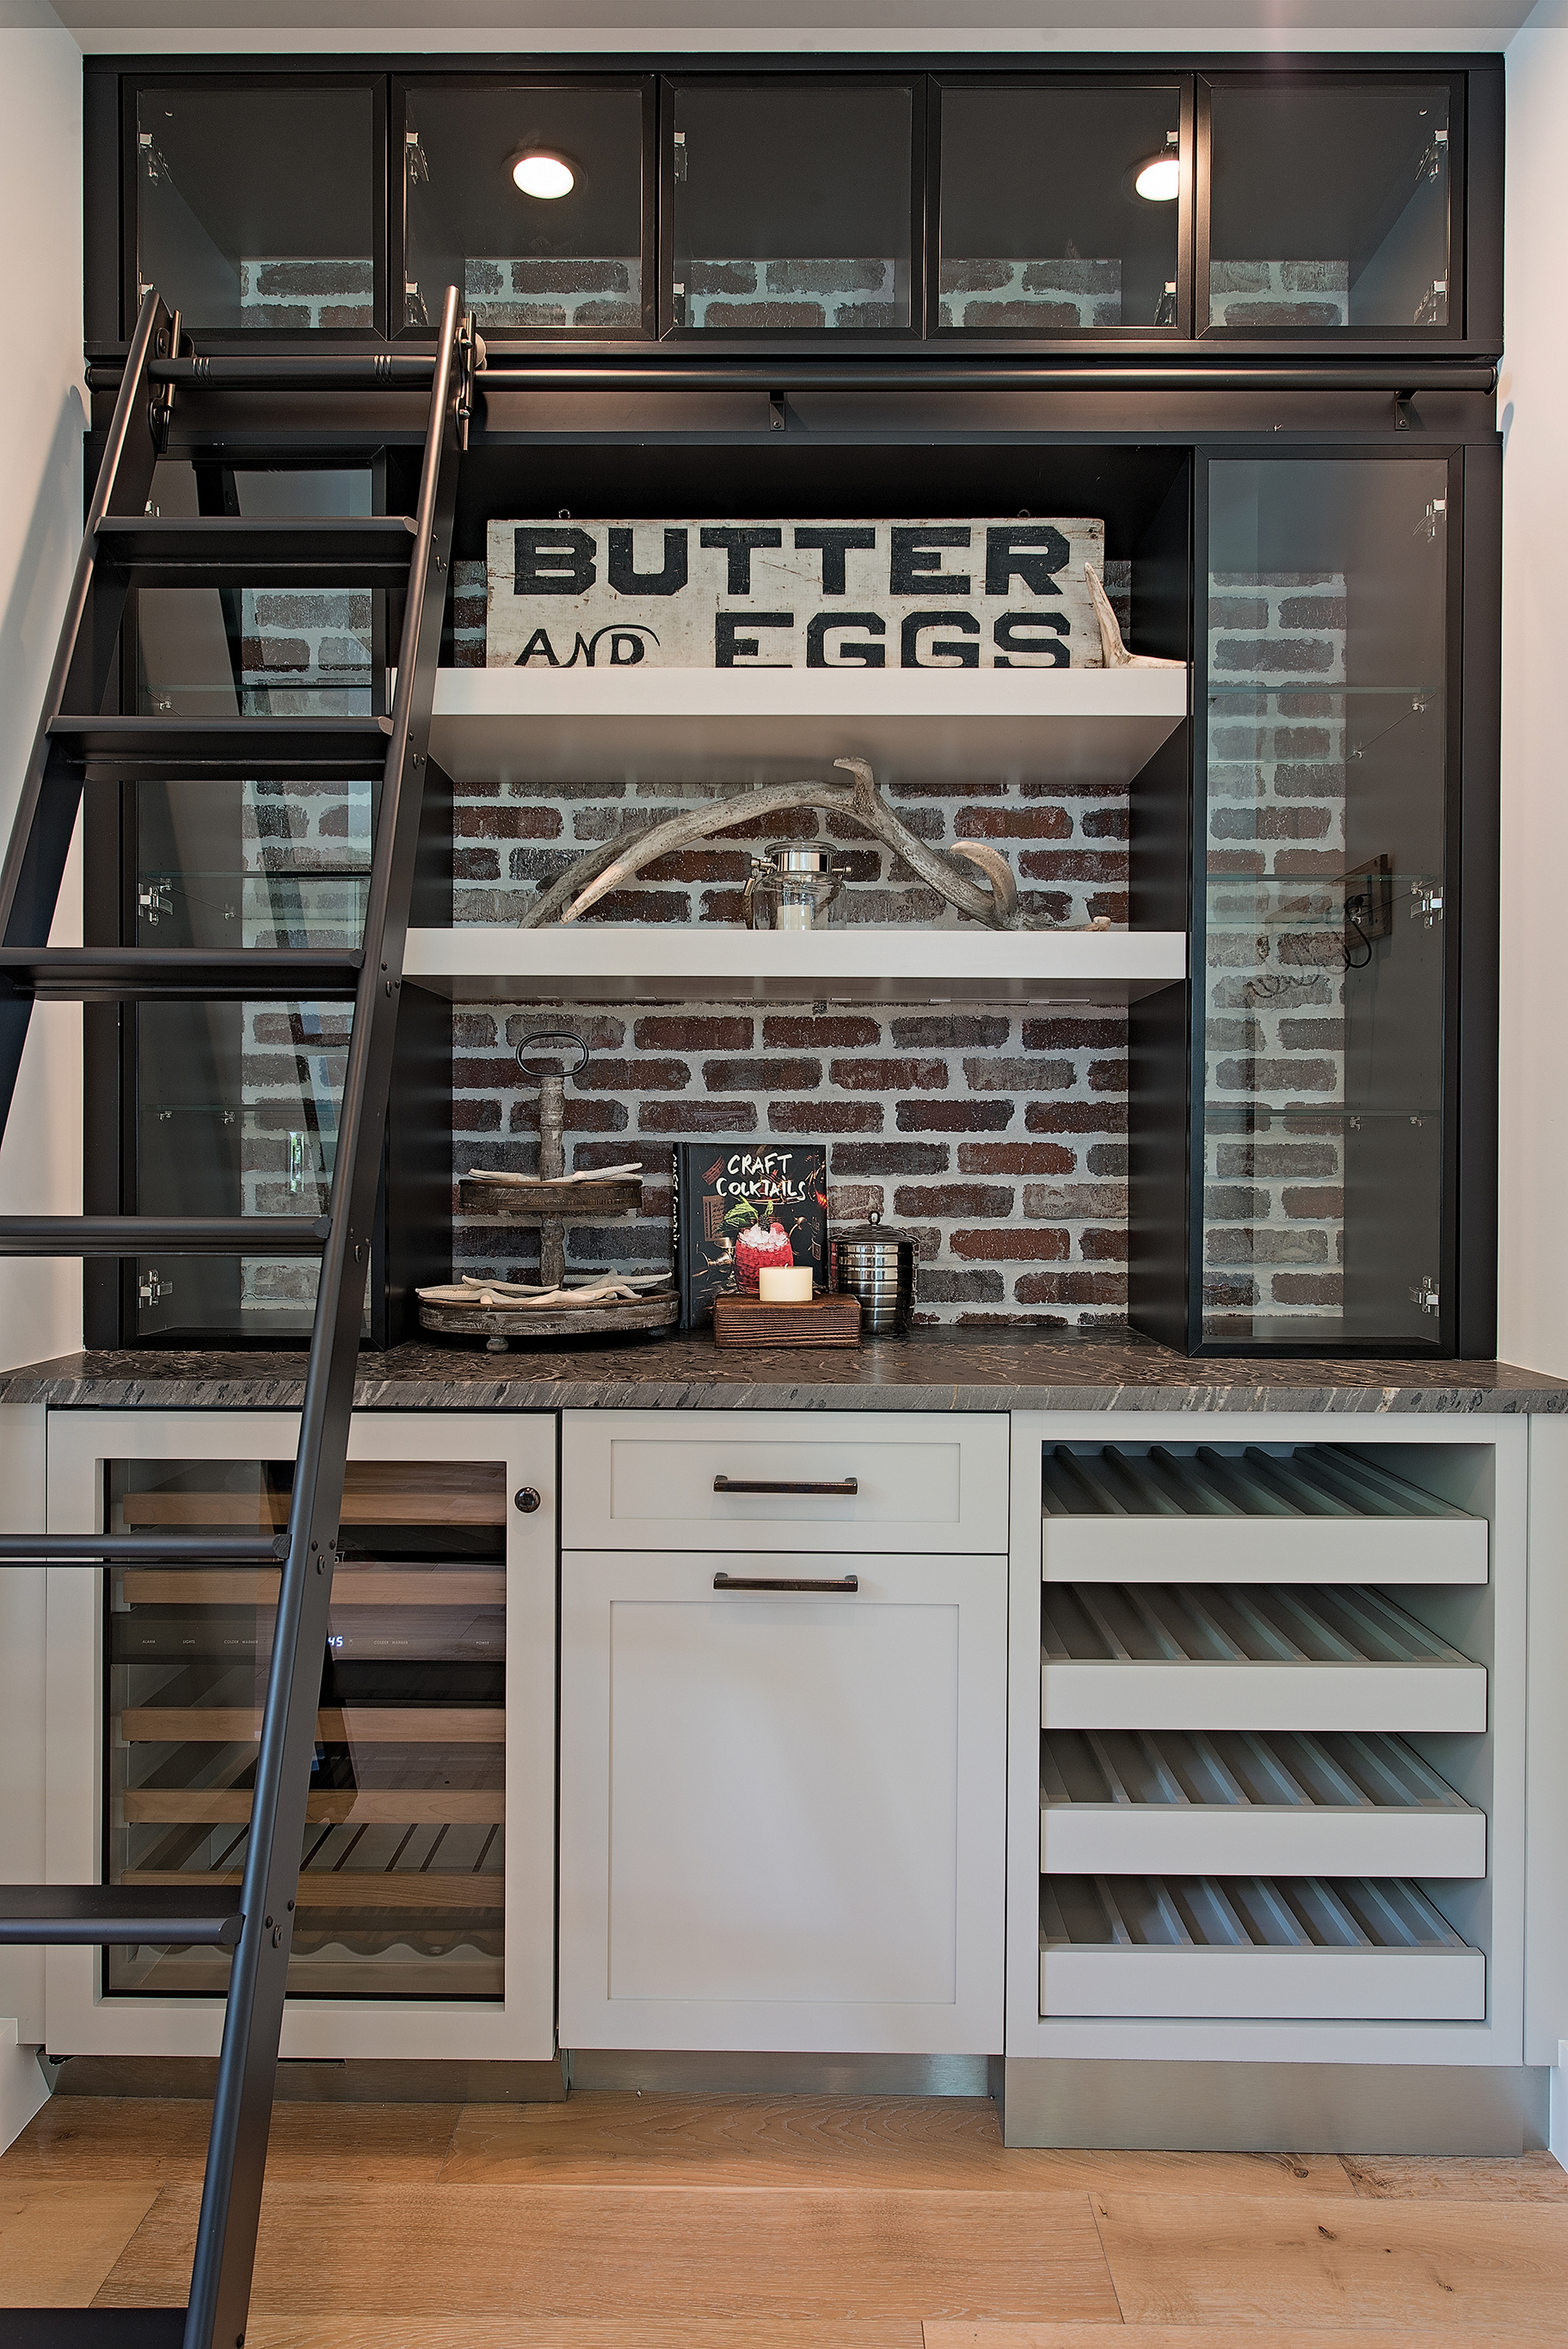 he whimsical library ladder and open shelving adds a fun element to the bar area in the kitchen. The wine cooler and storage racks create the perfect launching pad for a night of entertaining.